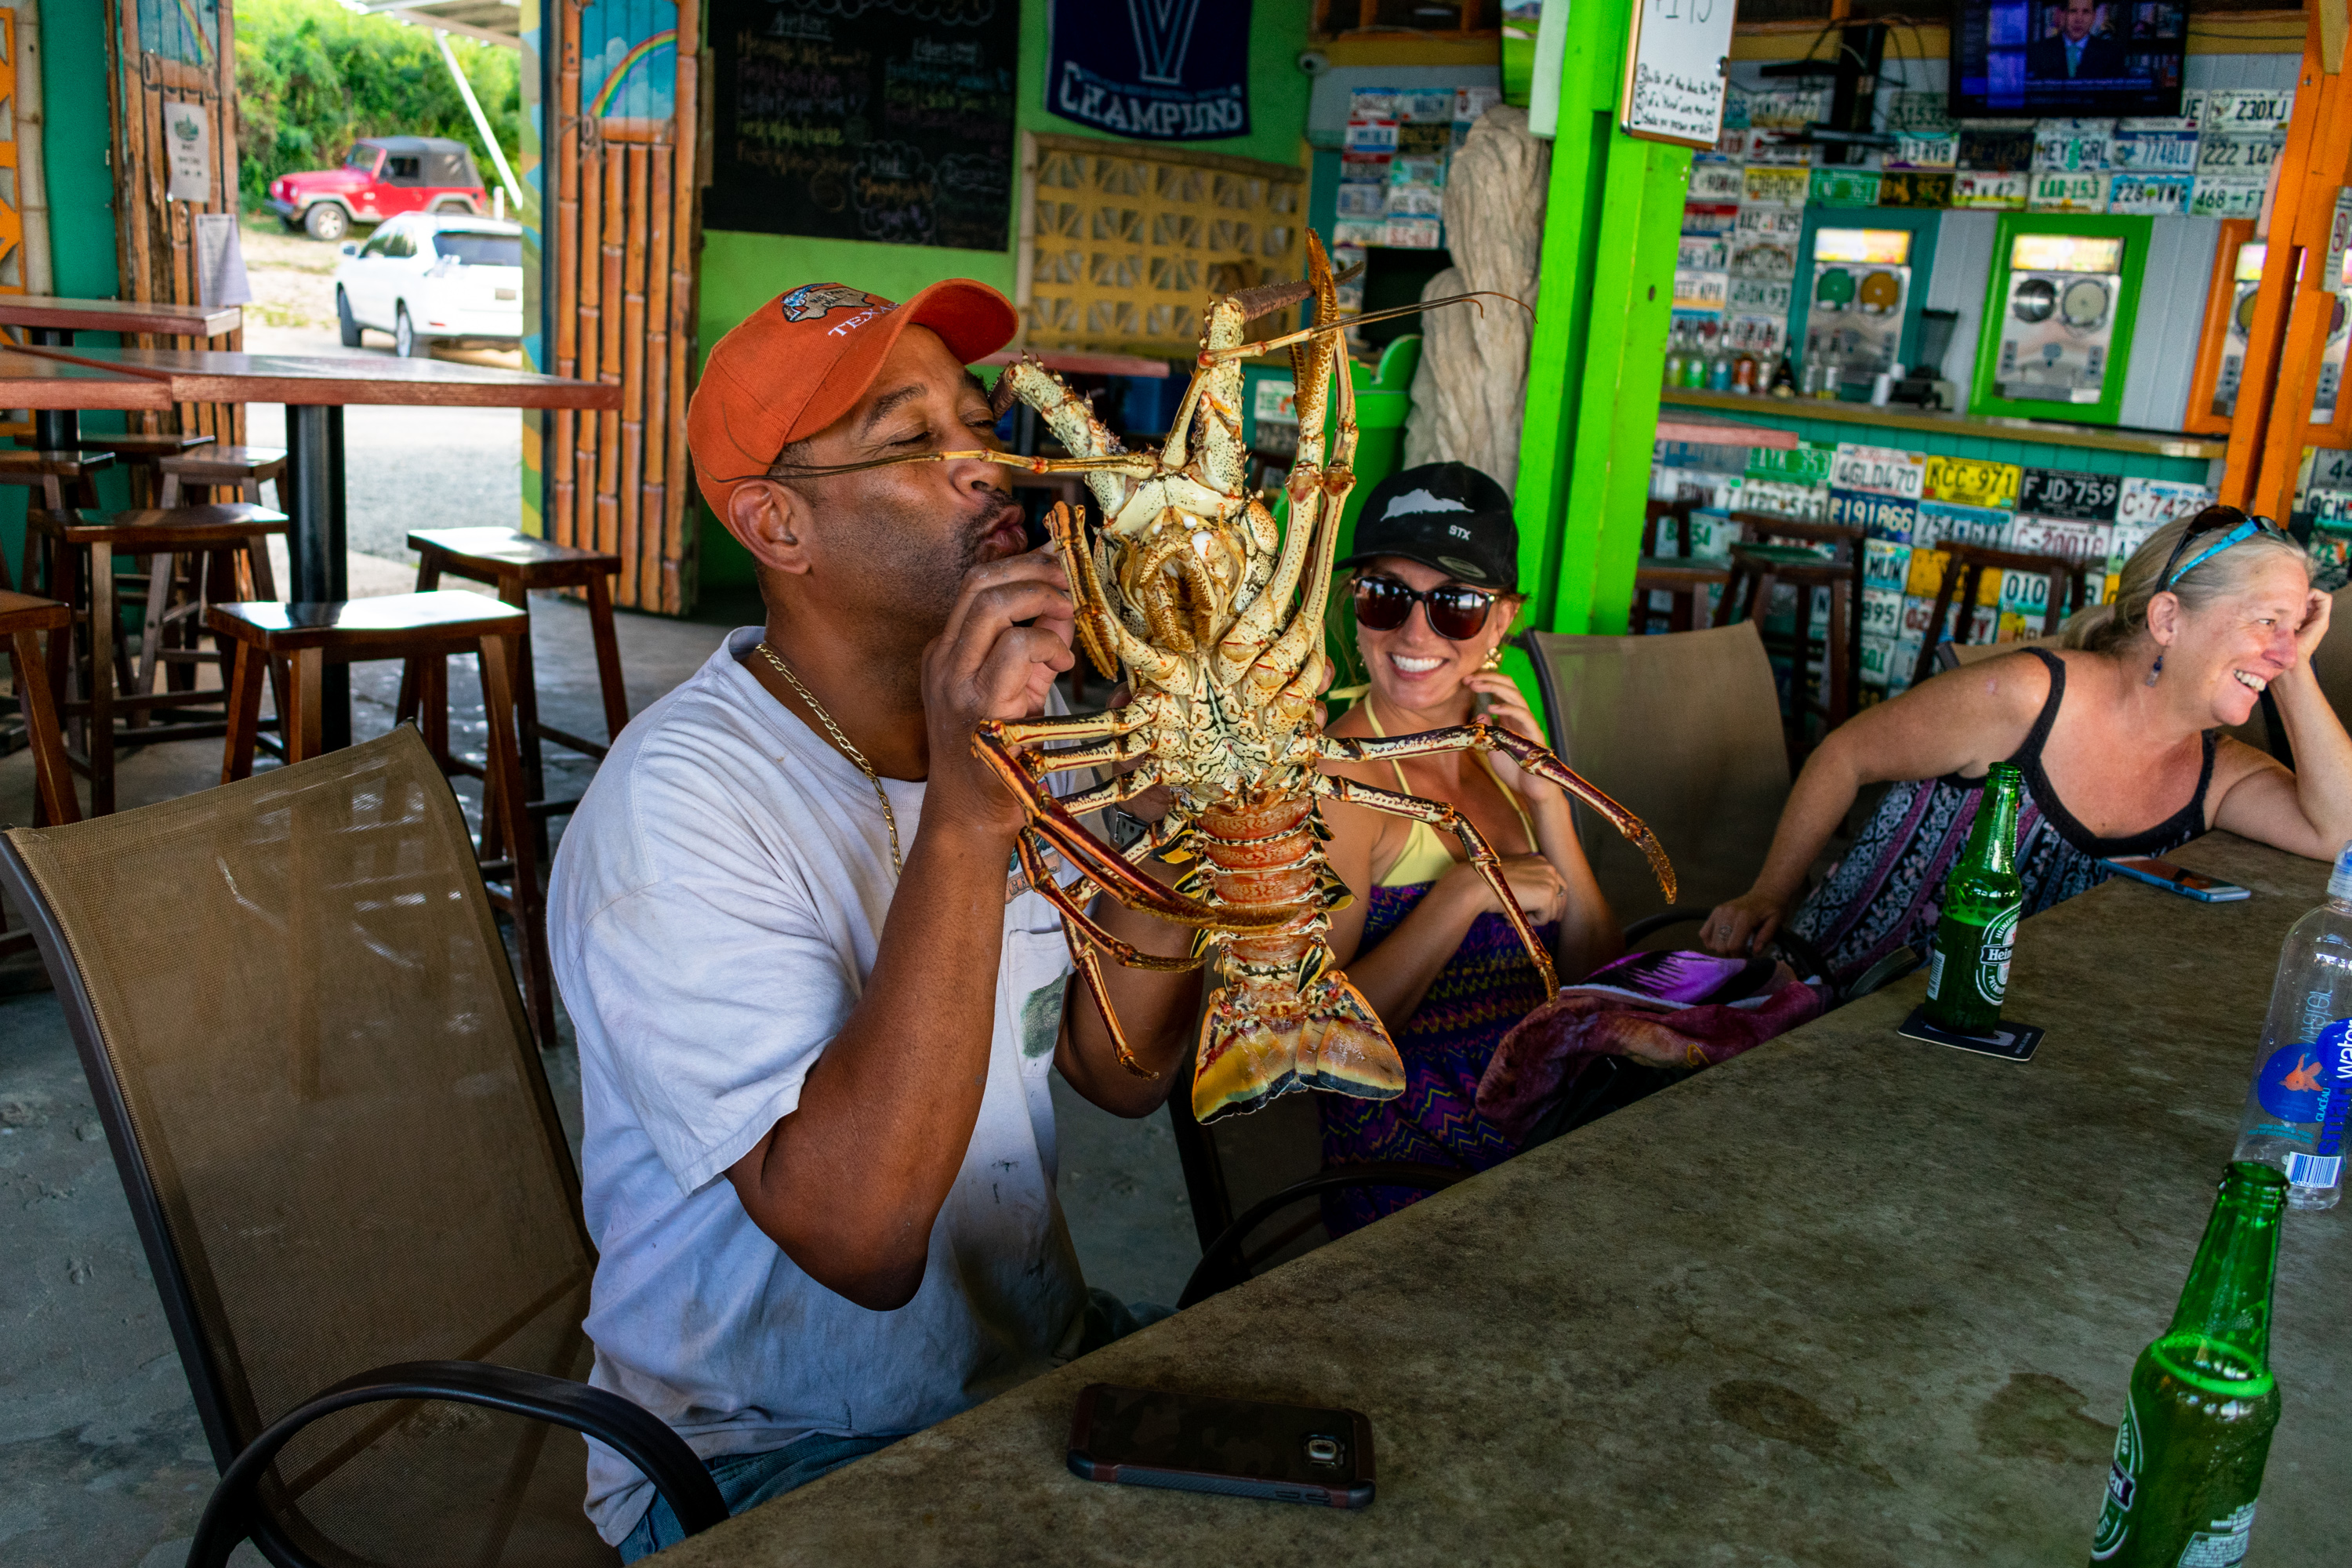 Monster Lobster at Rhythms at Rainbow Beach, St. Croix